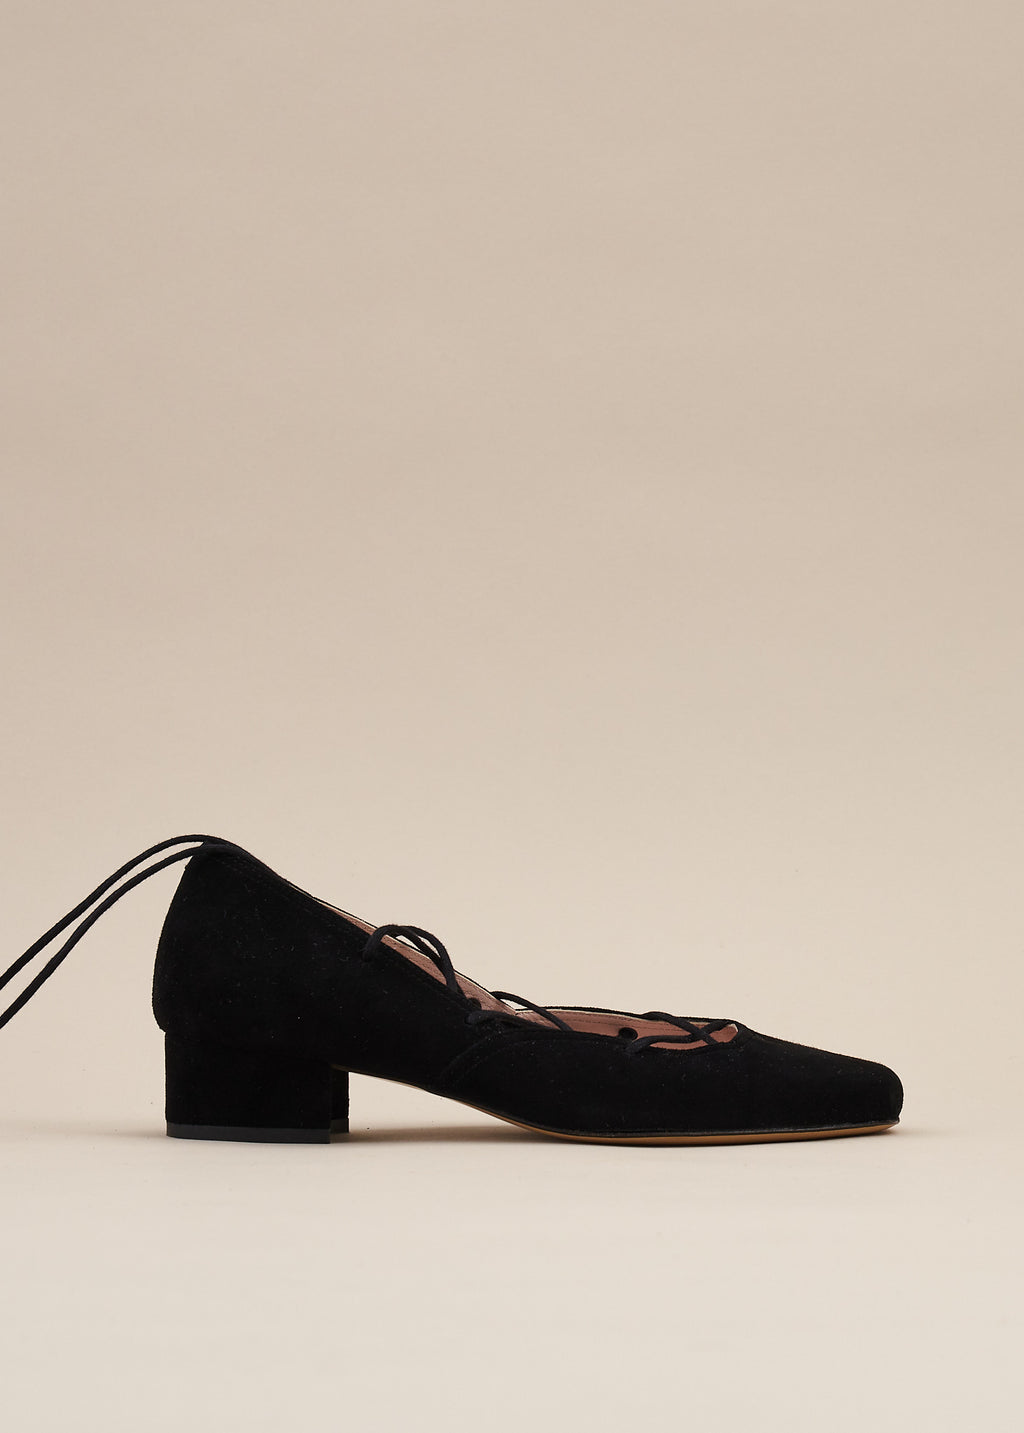 Elinor Black Suede Lace-up Ballerina Pump - LAST REMAINING PAIR SIZE 36